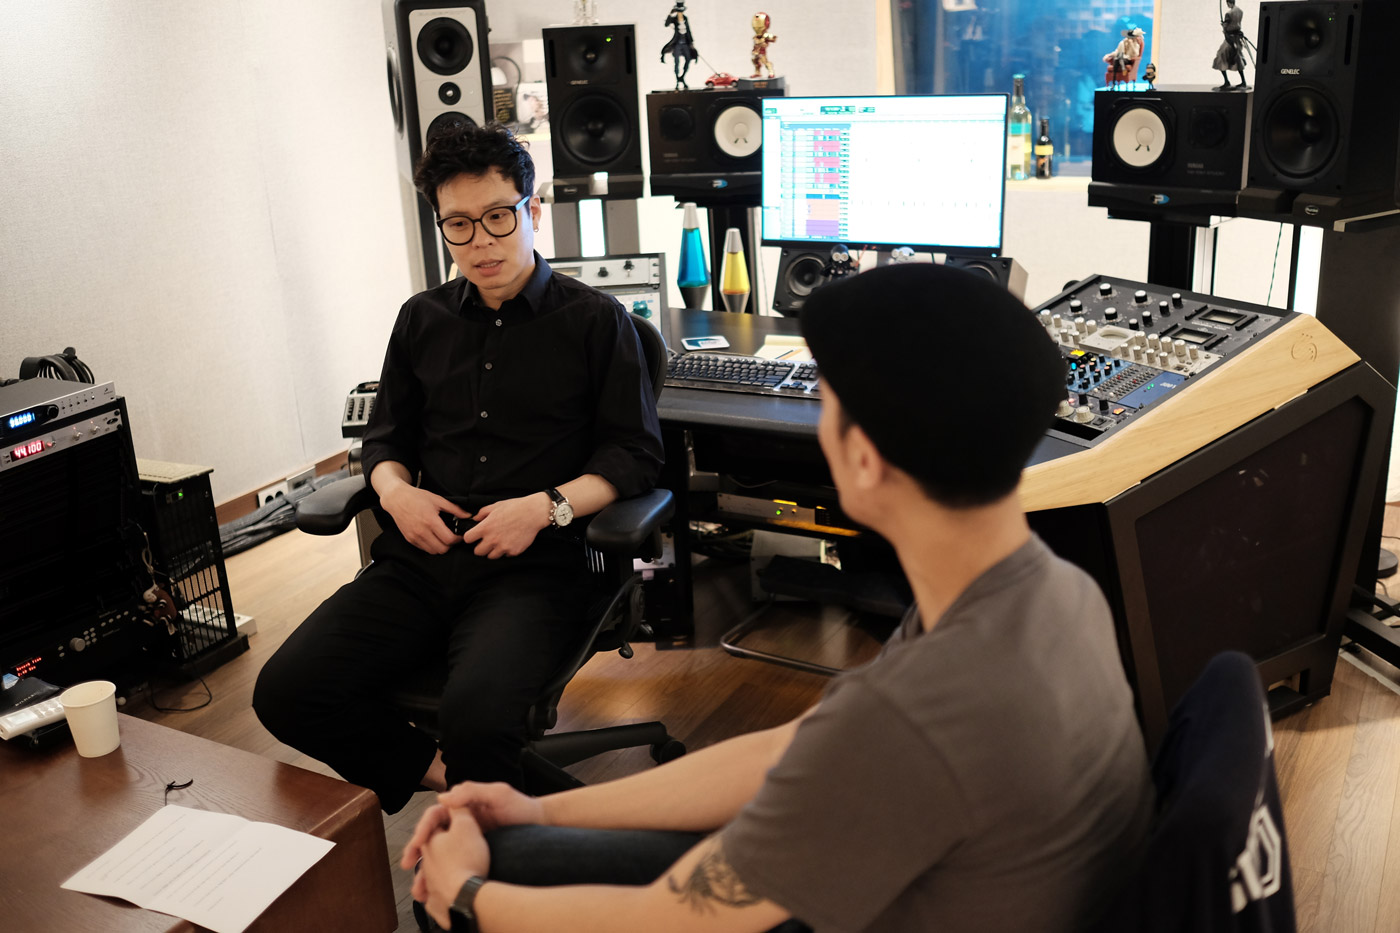 Interview with Jong-pil Gu, about recording and mixing with Antelope Audio